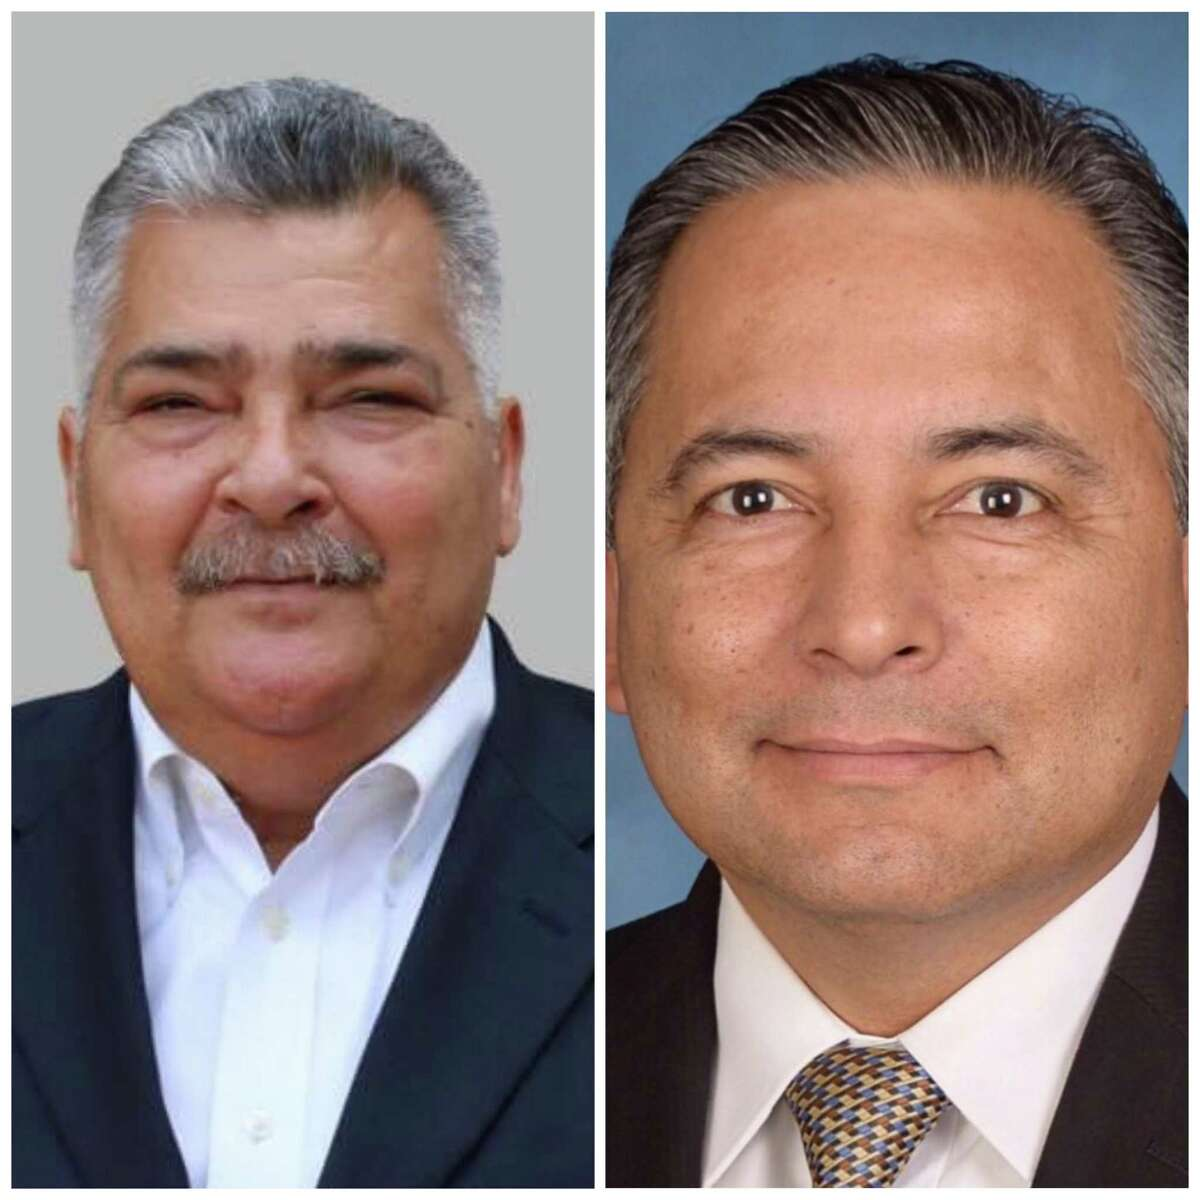 Manuel Lopez, left, lost to Ernesto Arrellano Jr. in a bid for the District 2 seat on the South San ISD board.